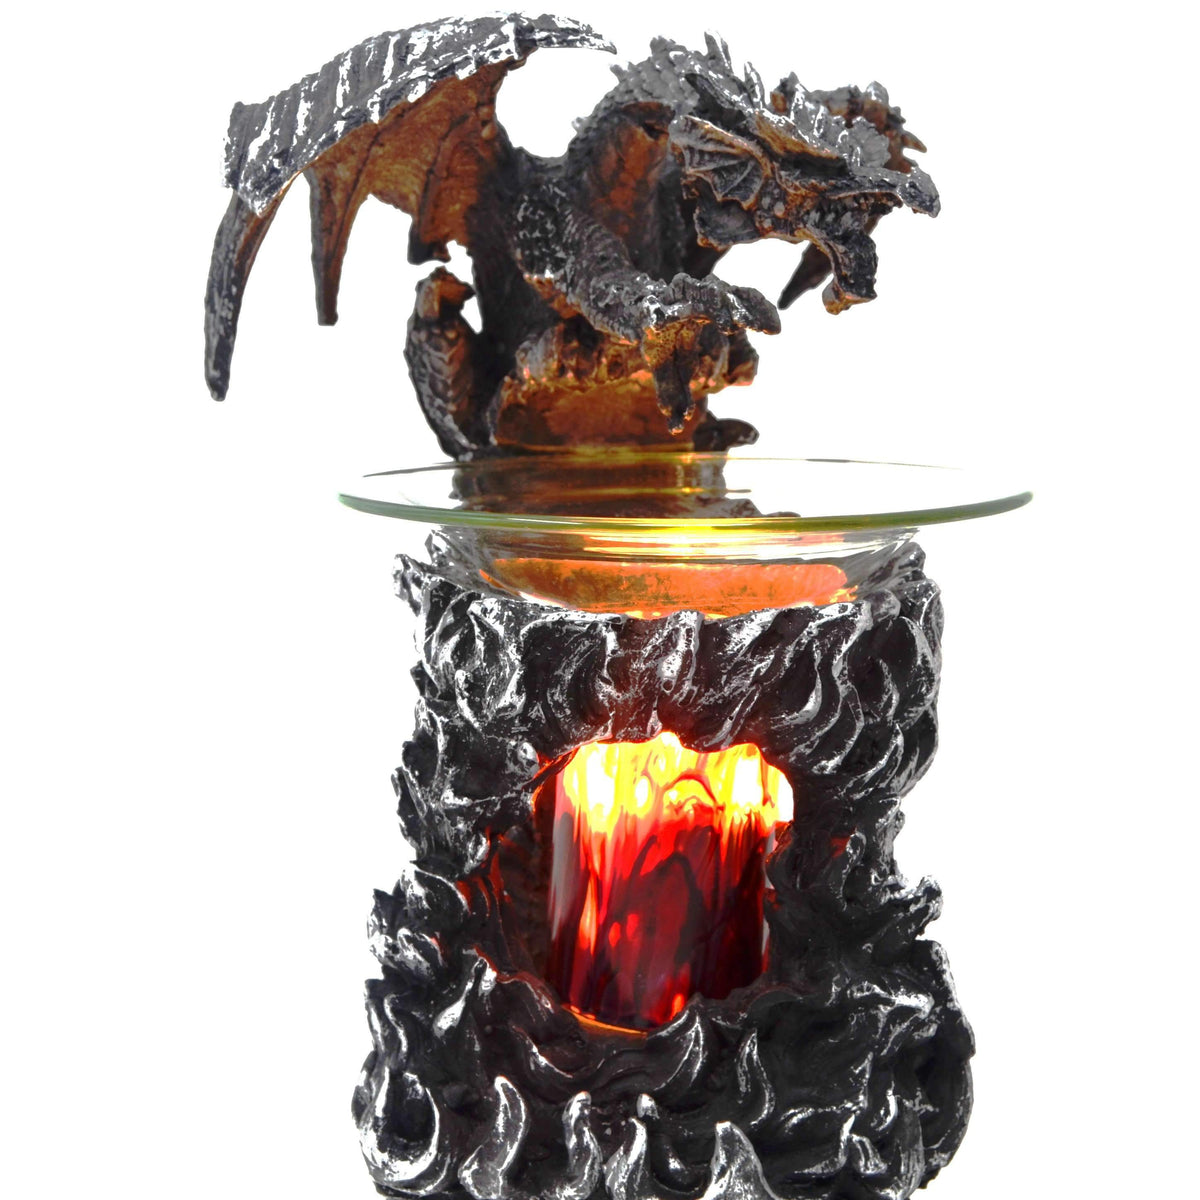 Mythical Winged Dragon Fragrance Lamp & Electric Oil BurnerCrystal Xpress